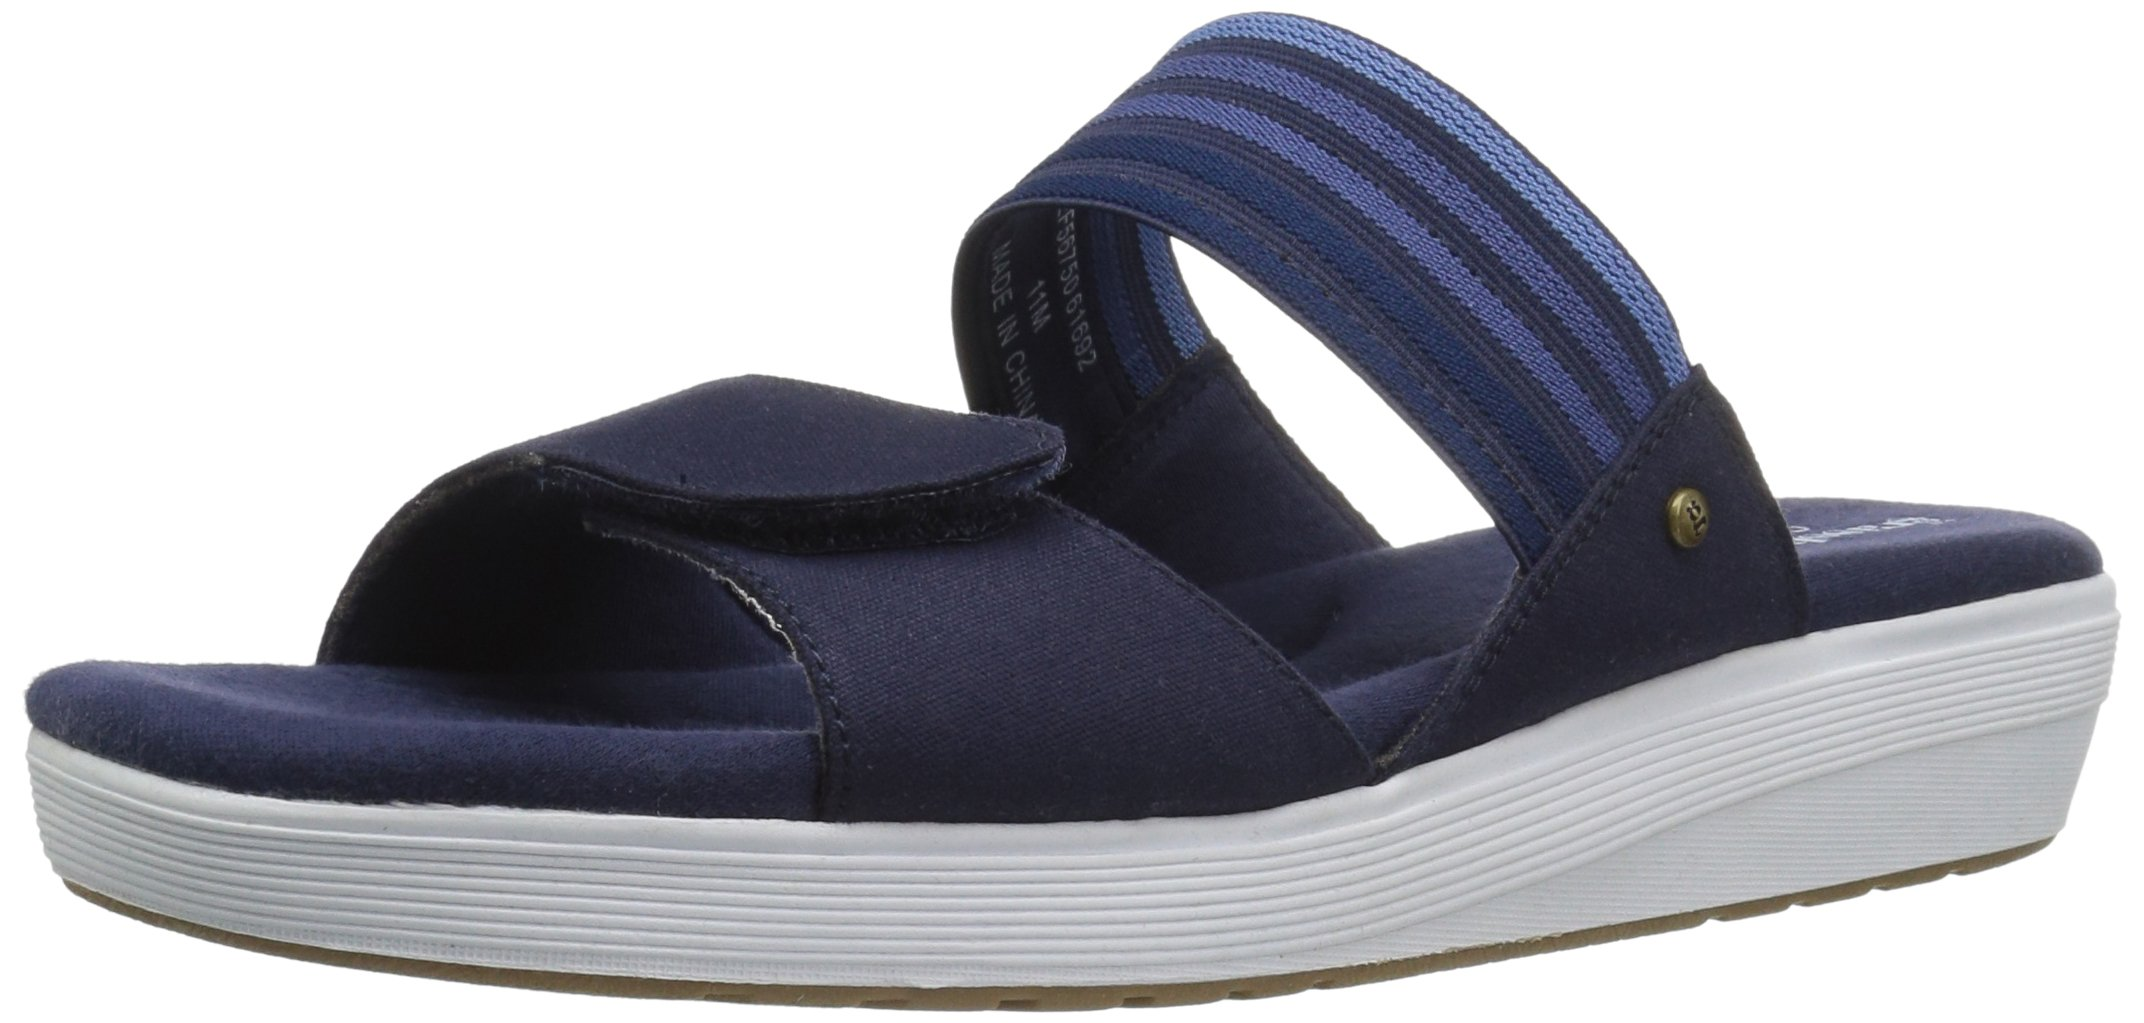 Grasshoppers Women's Springy Flat Sandal, Peacoat Navy, 7 W US